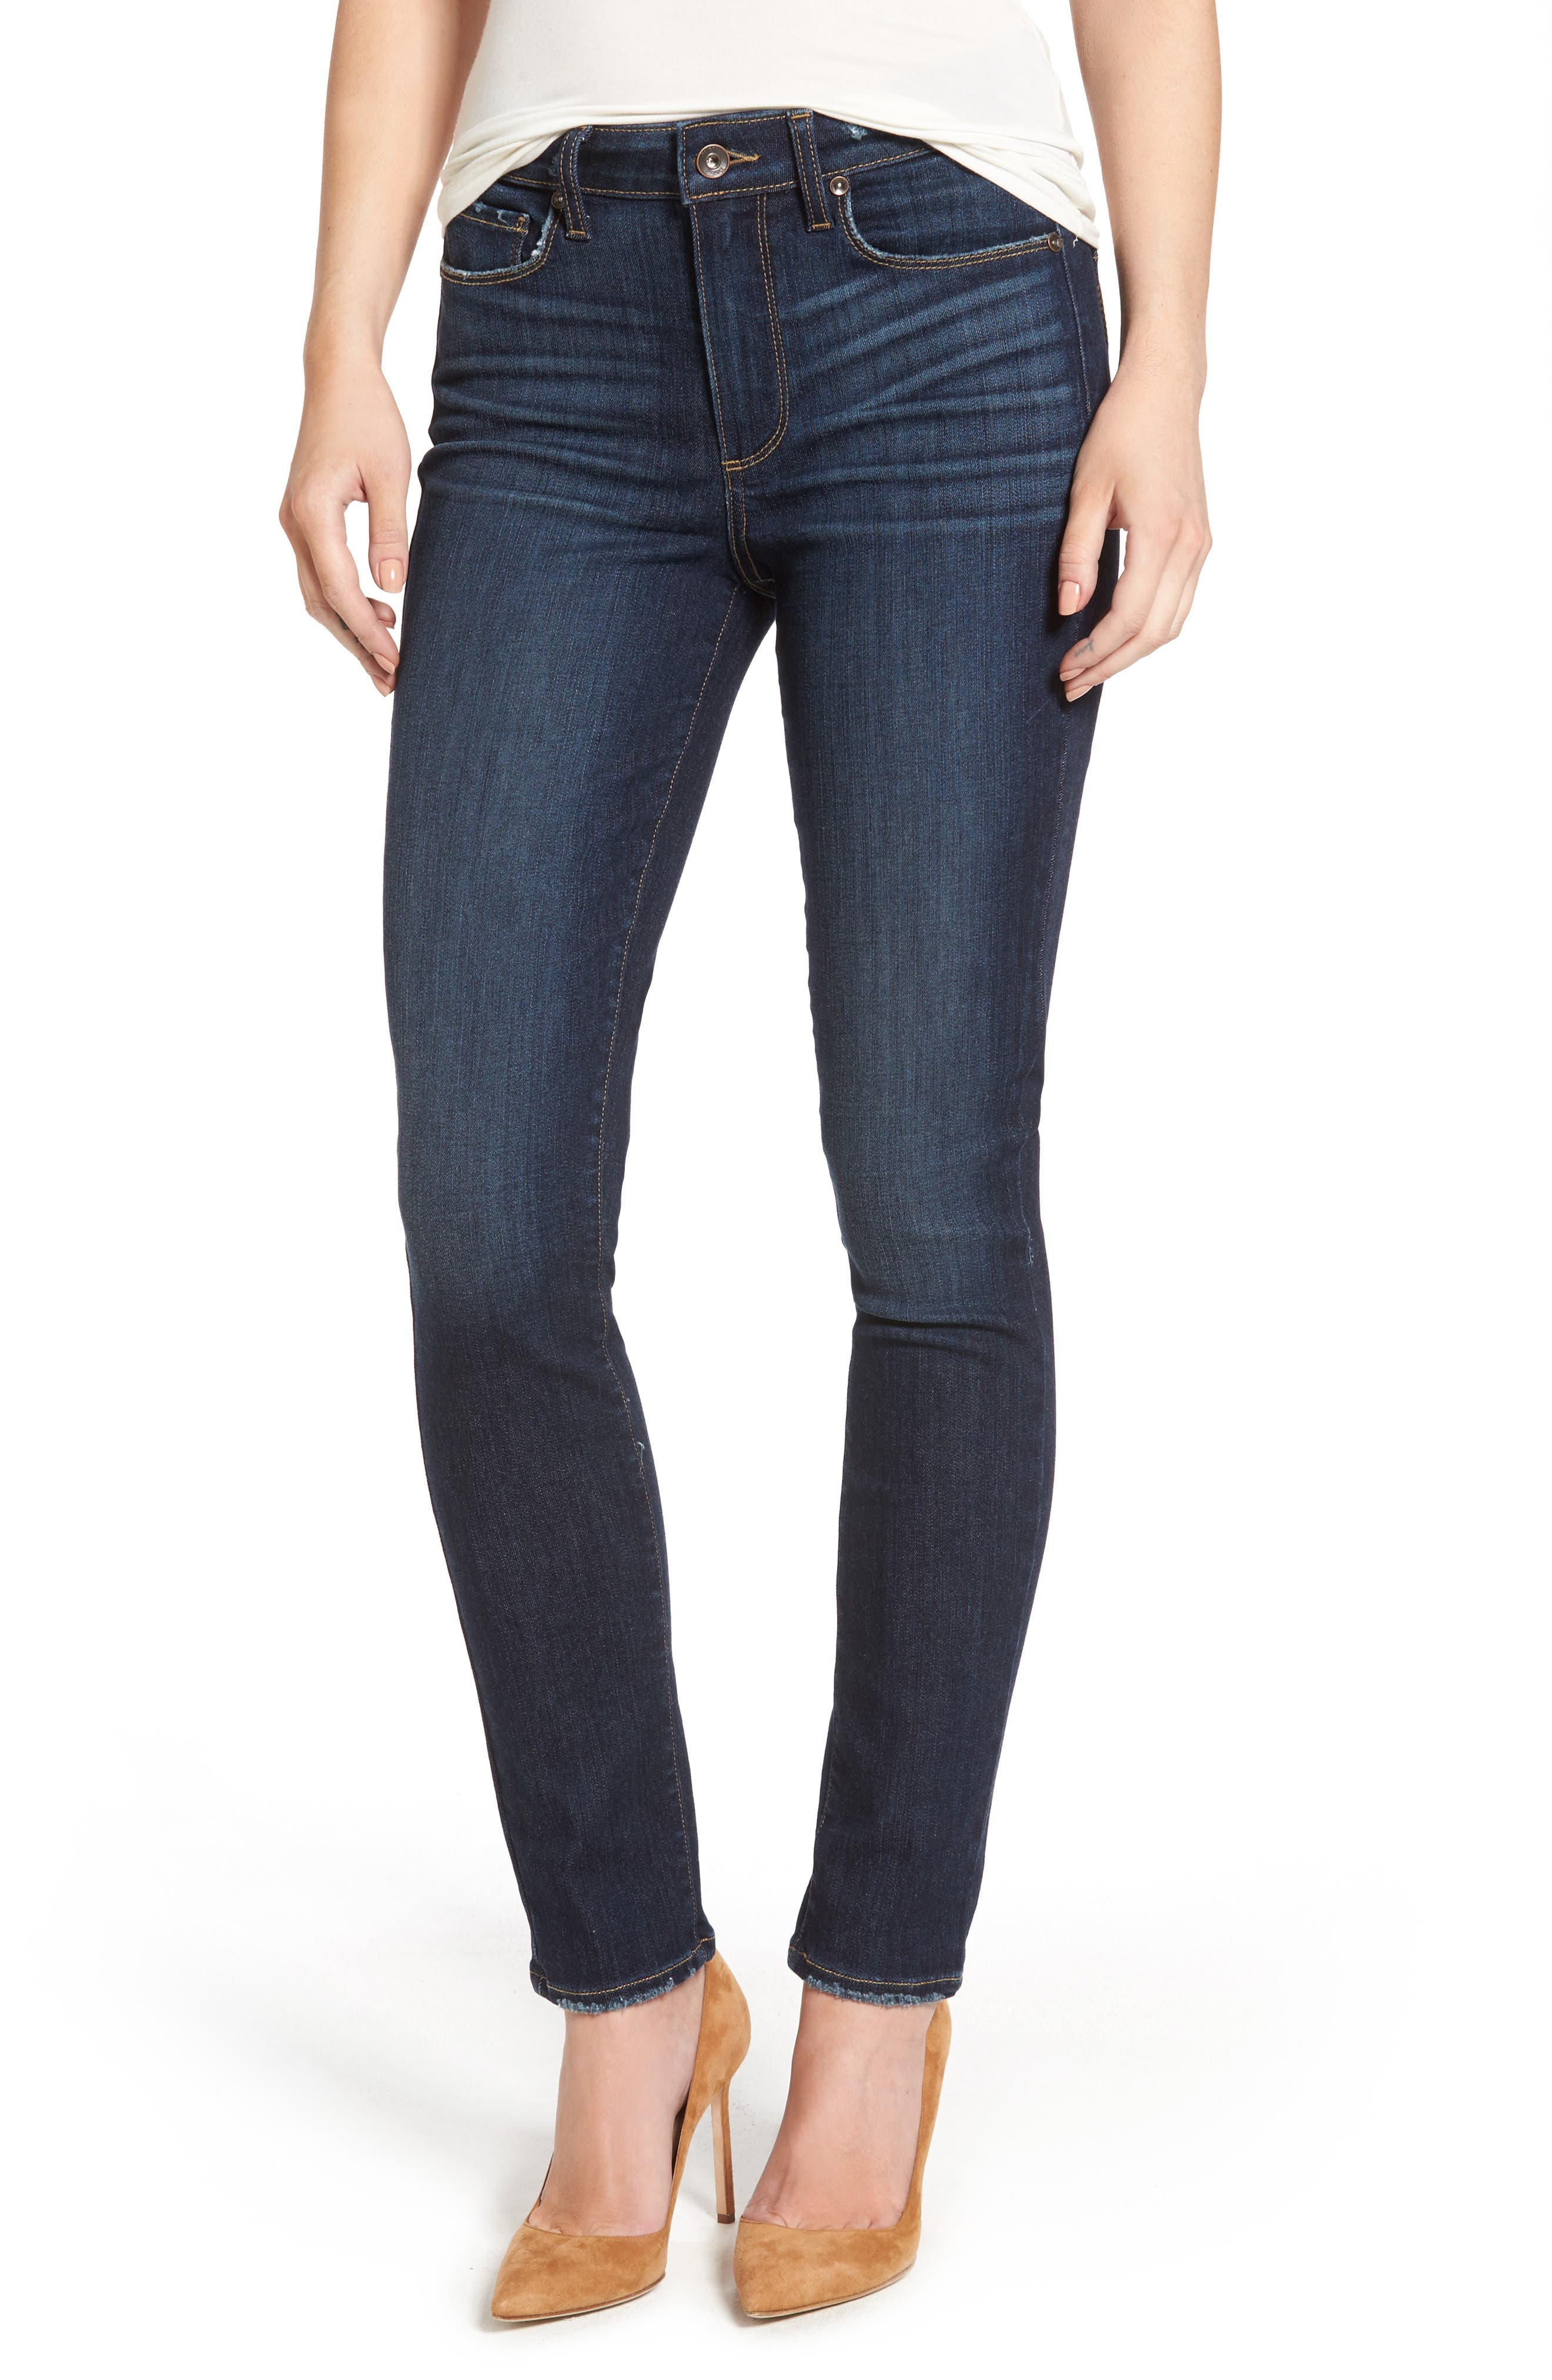 Hoxton High Waist Ankle Skinny Jeans,                         Main,                         color, Revere